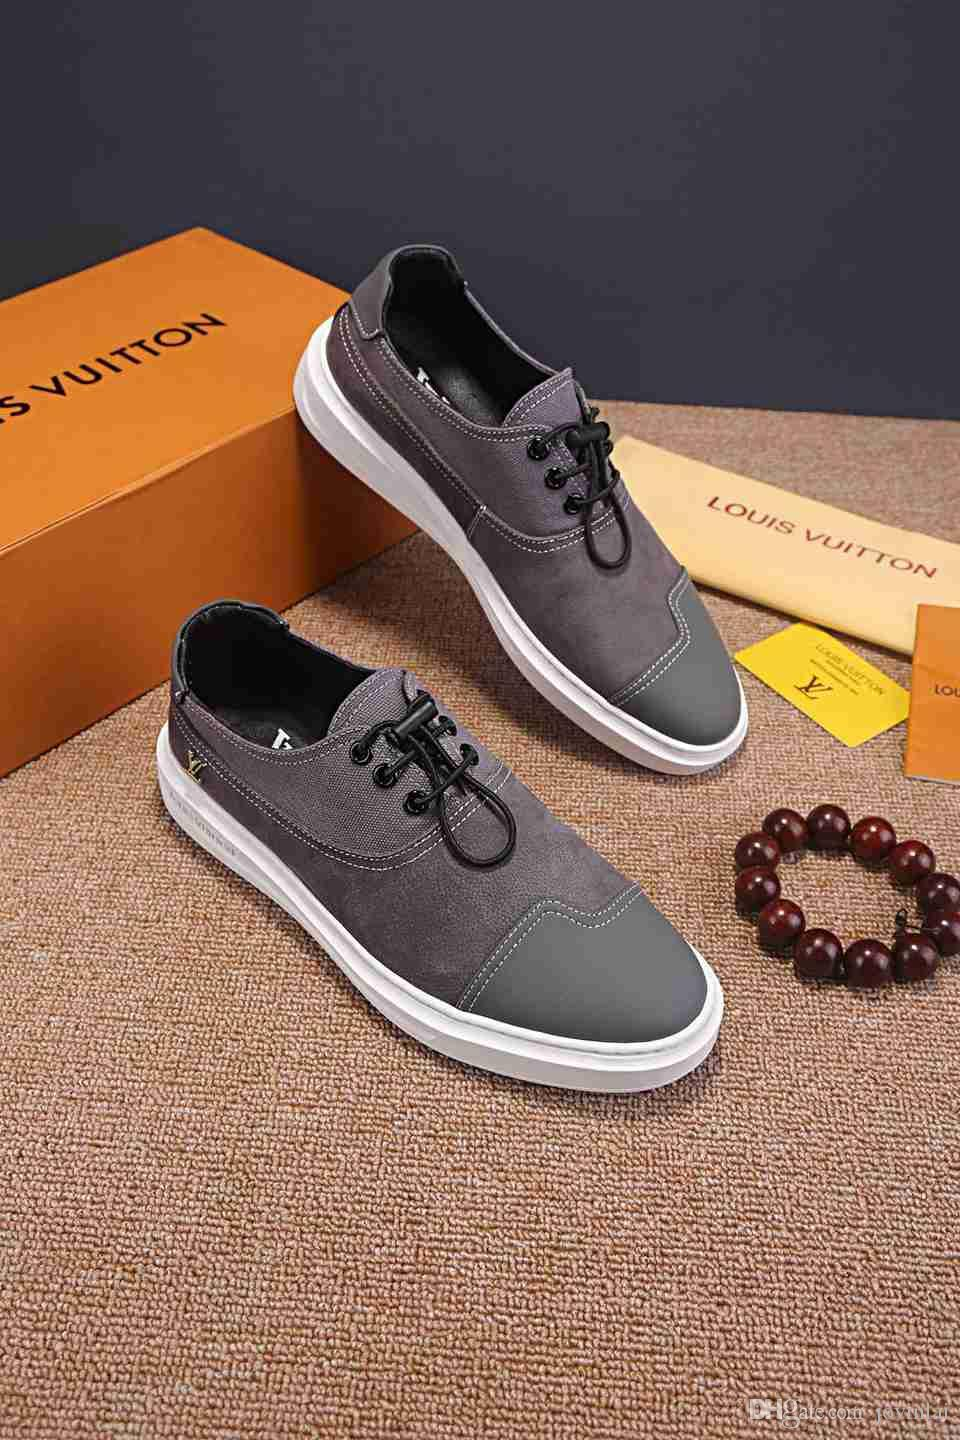 New French high-end brand men's fashion casual shoes Italy original imported leather face sheepskin lining rubber outsole comfortable walkin